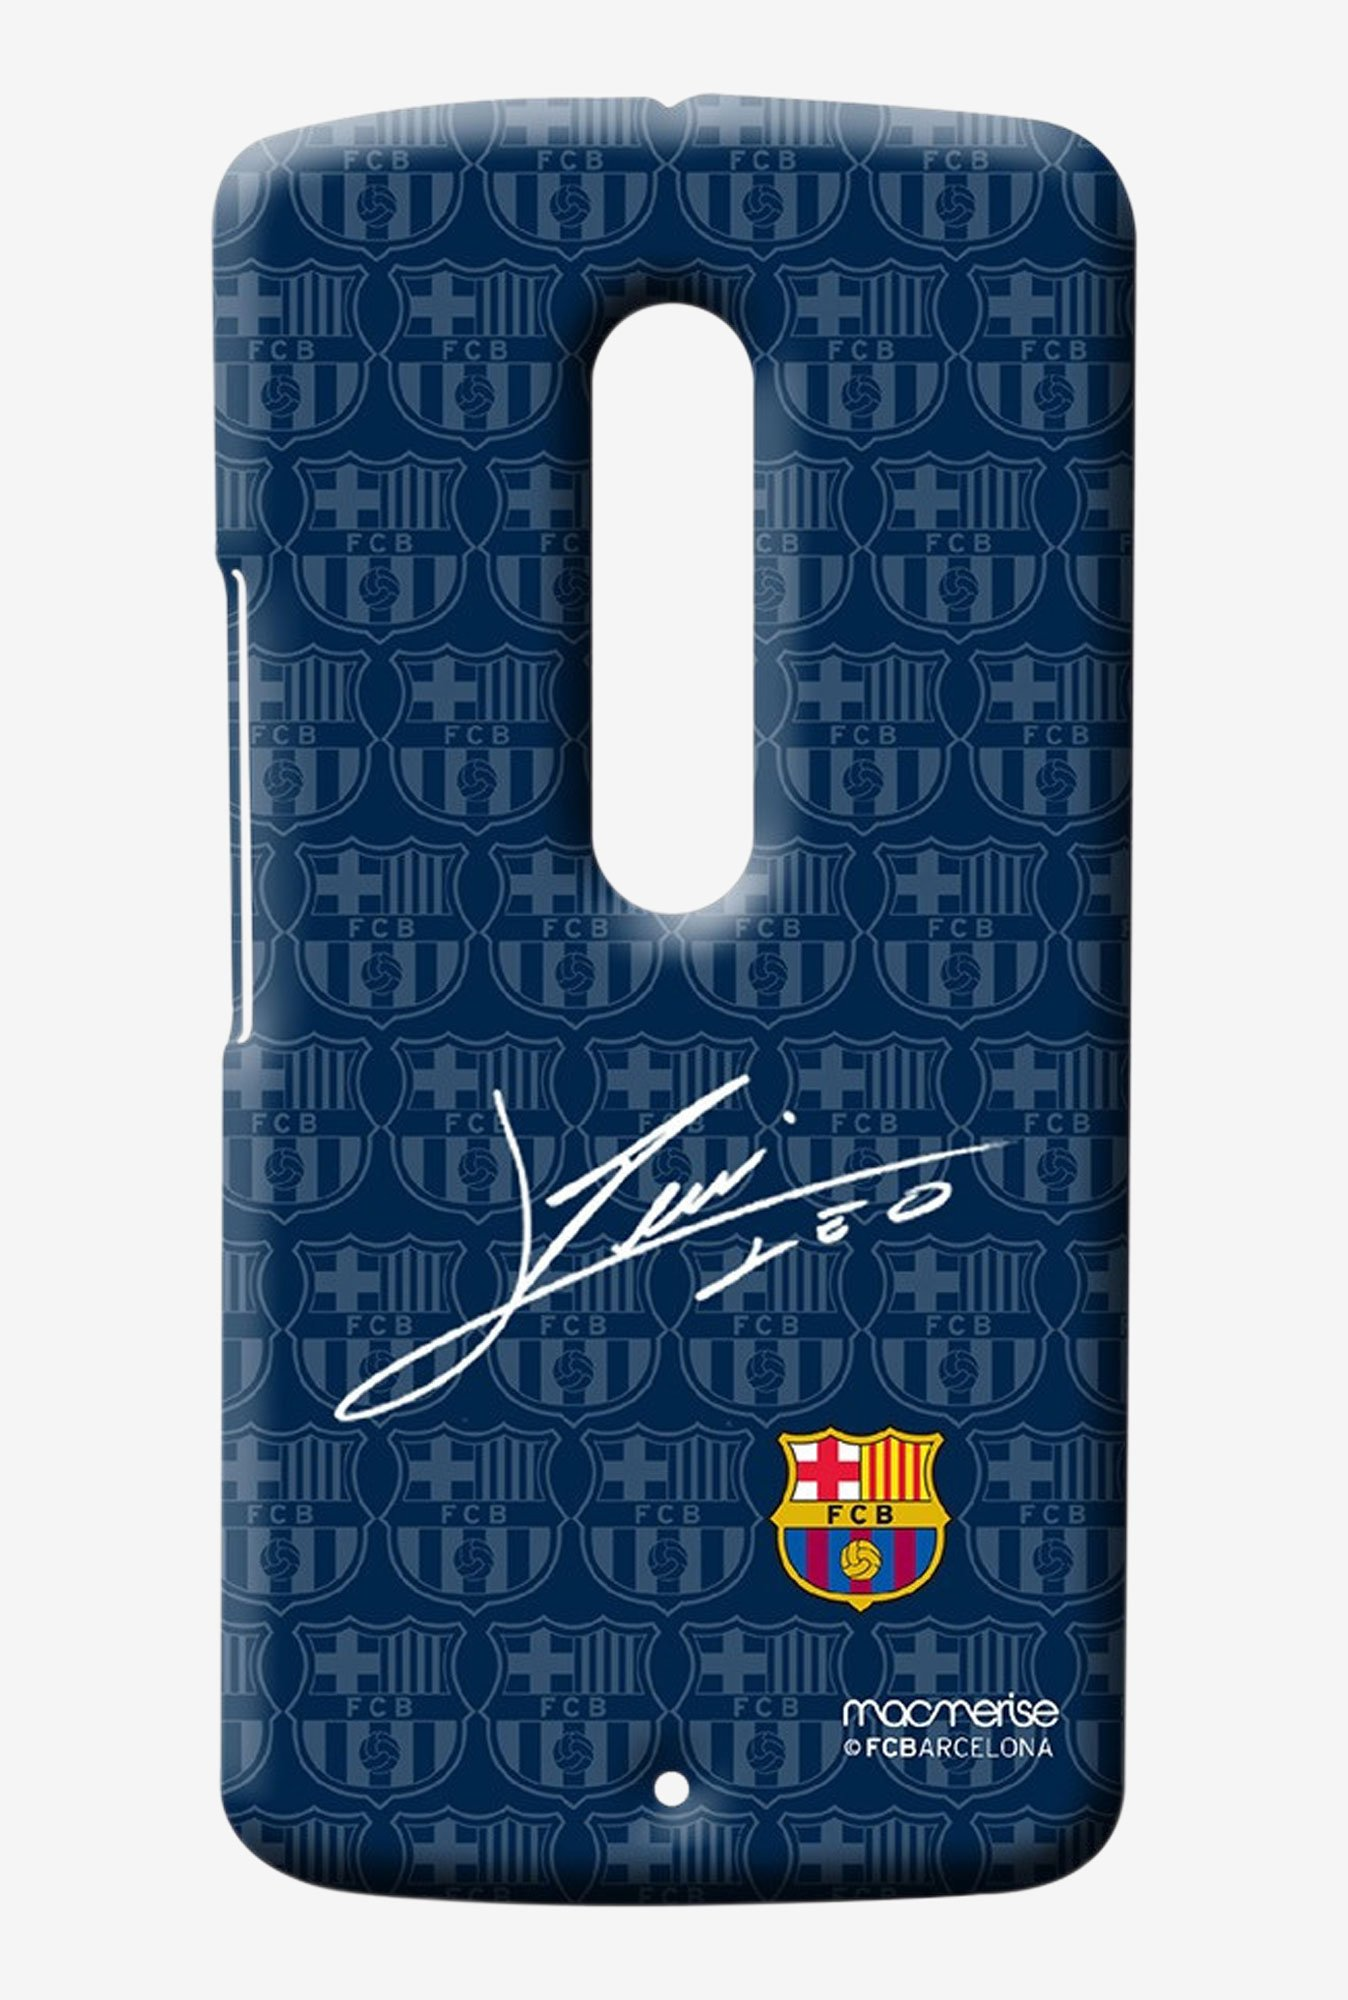 Macmerise Autograph Messi Sublime Case for Moto X Play